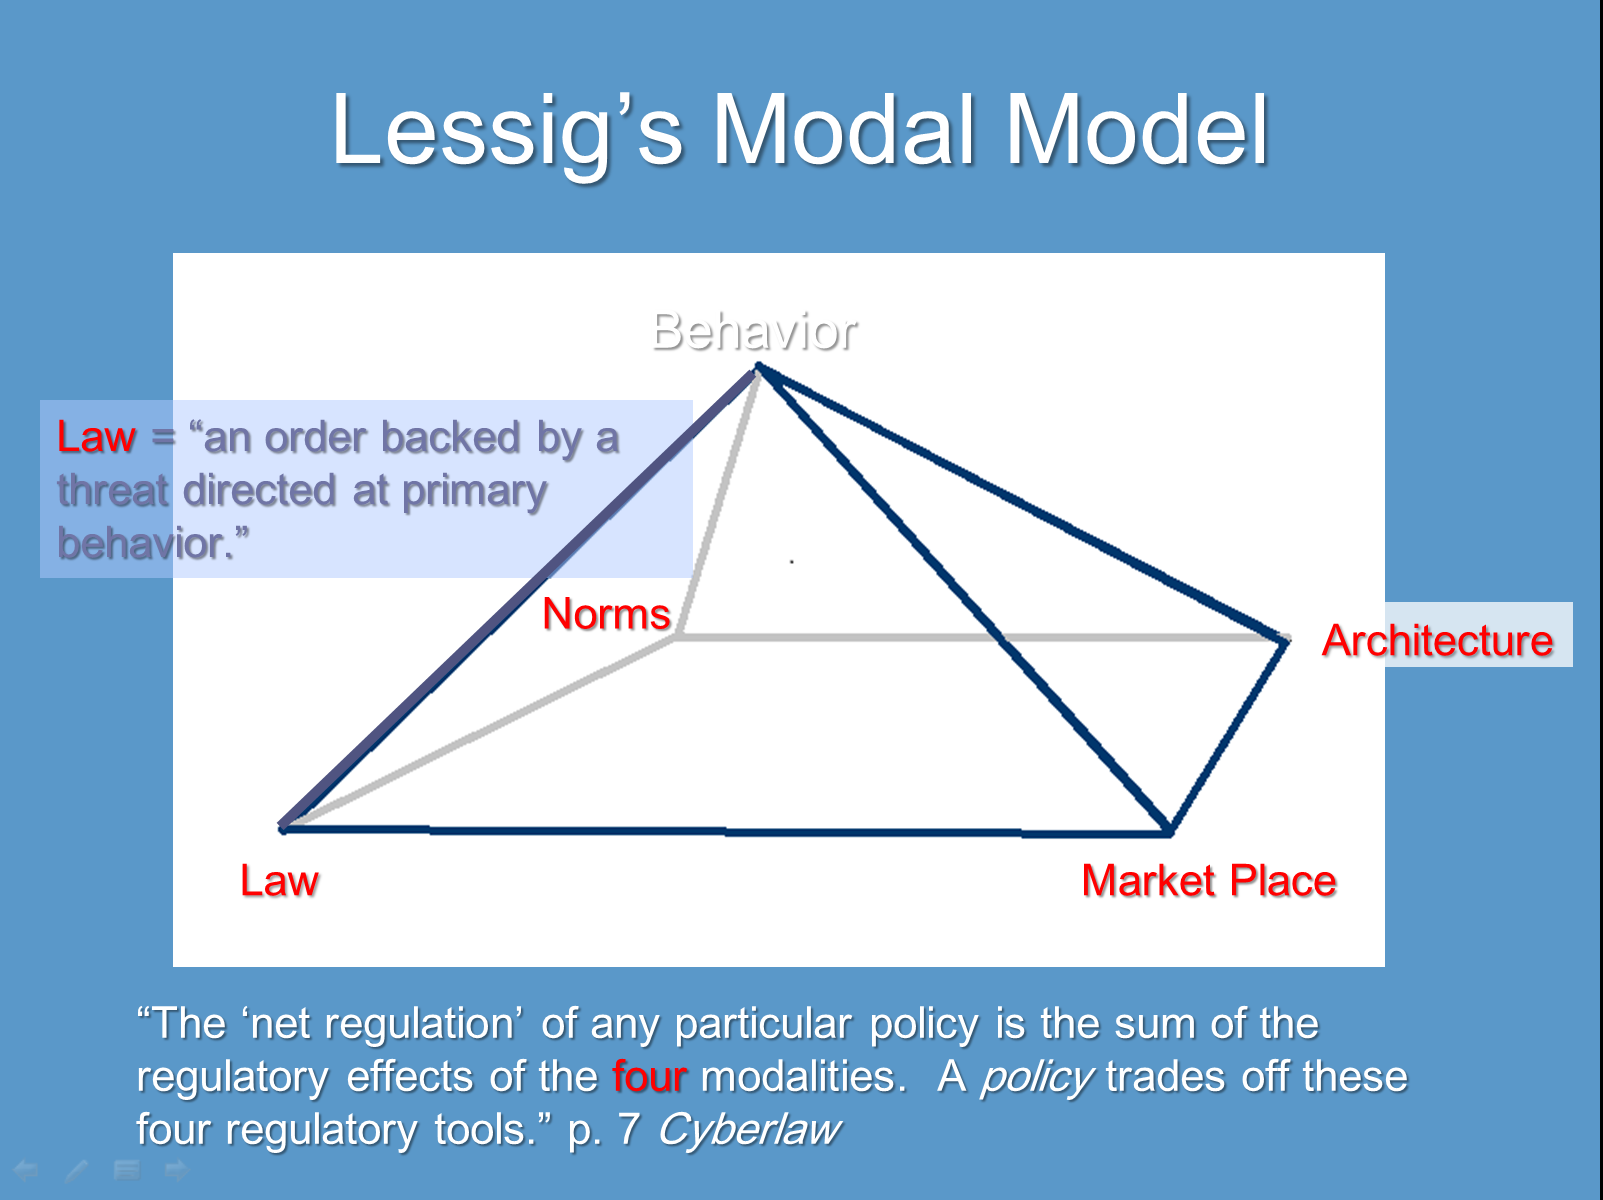 Illustration Lawrence Lessig's Model of the Modalities Affecting Behavior in Cyberspace (Law, Architecture, Norms, and Markets